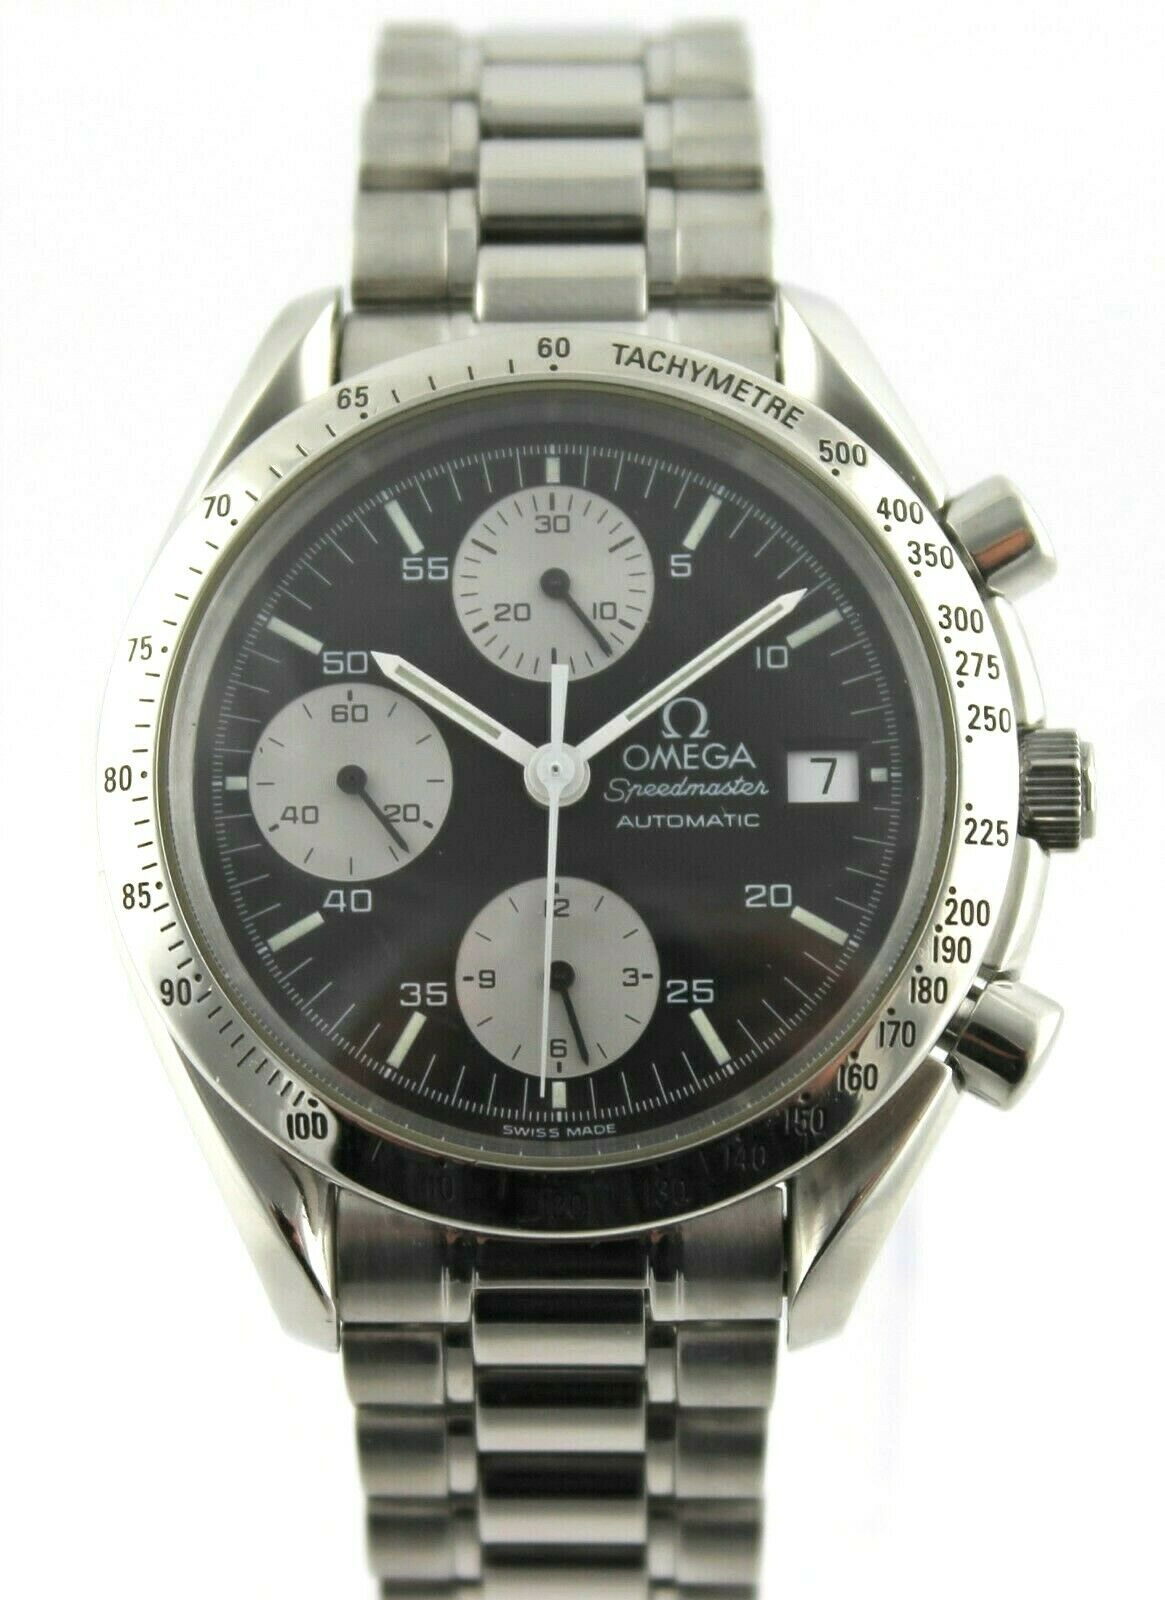 OMEGA MENS SPEEDMASTER 3511.50 AUTOMATIC CHRONOGRAPH PANDA STEEL WATCH SERVICED